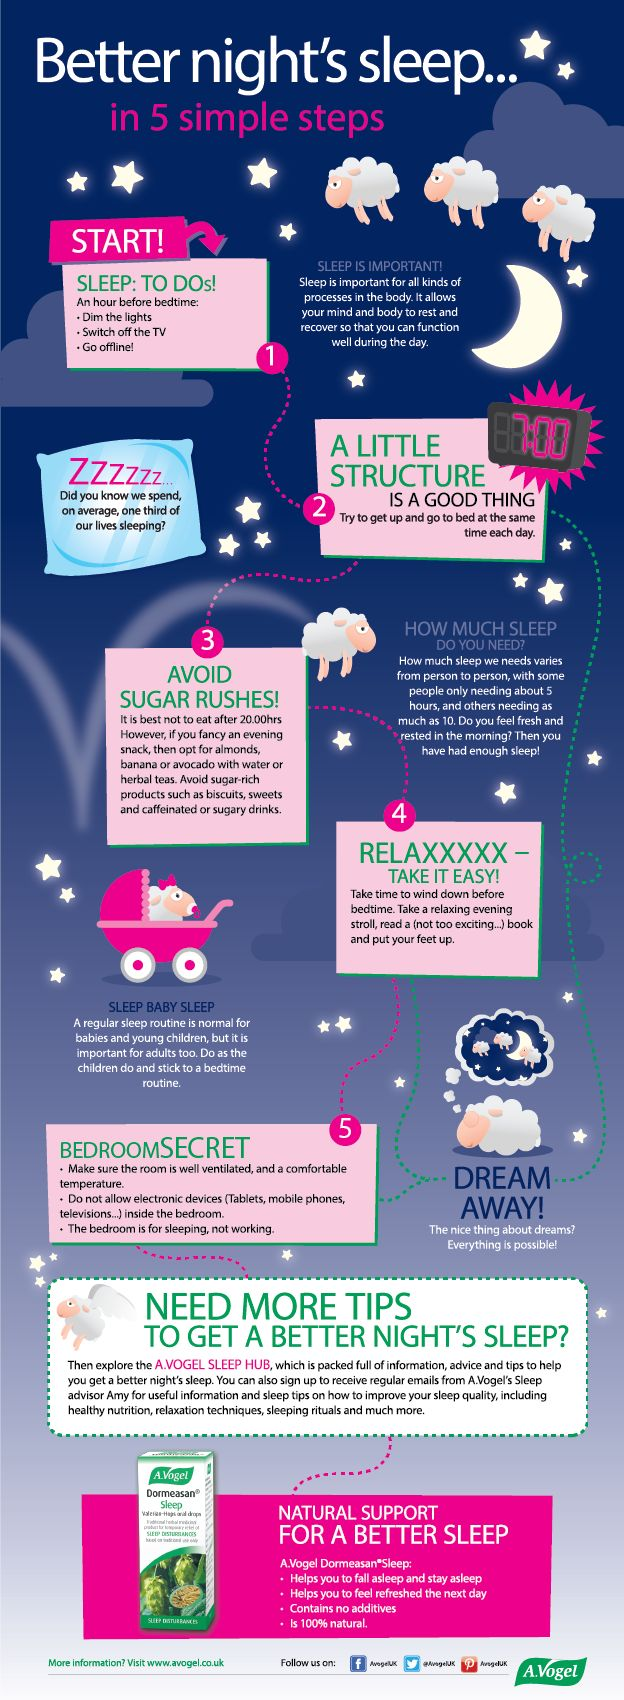 A better night's sleep in 5 simple steps